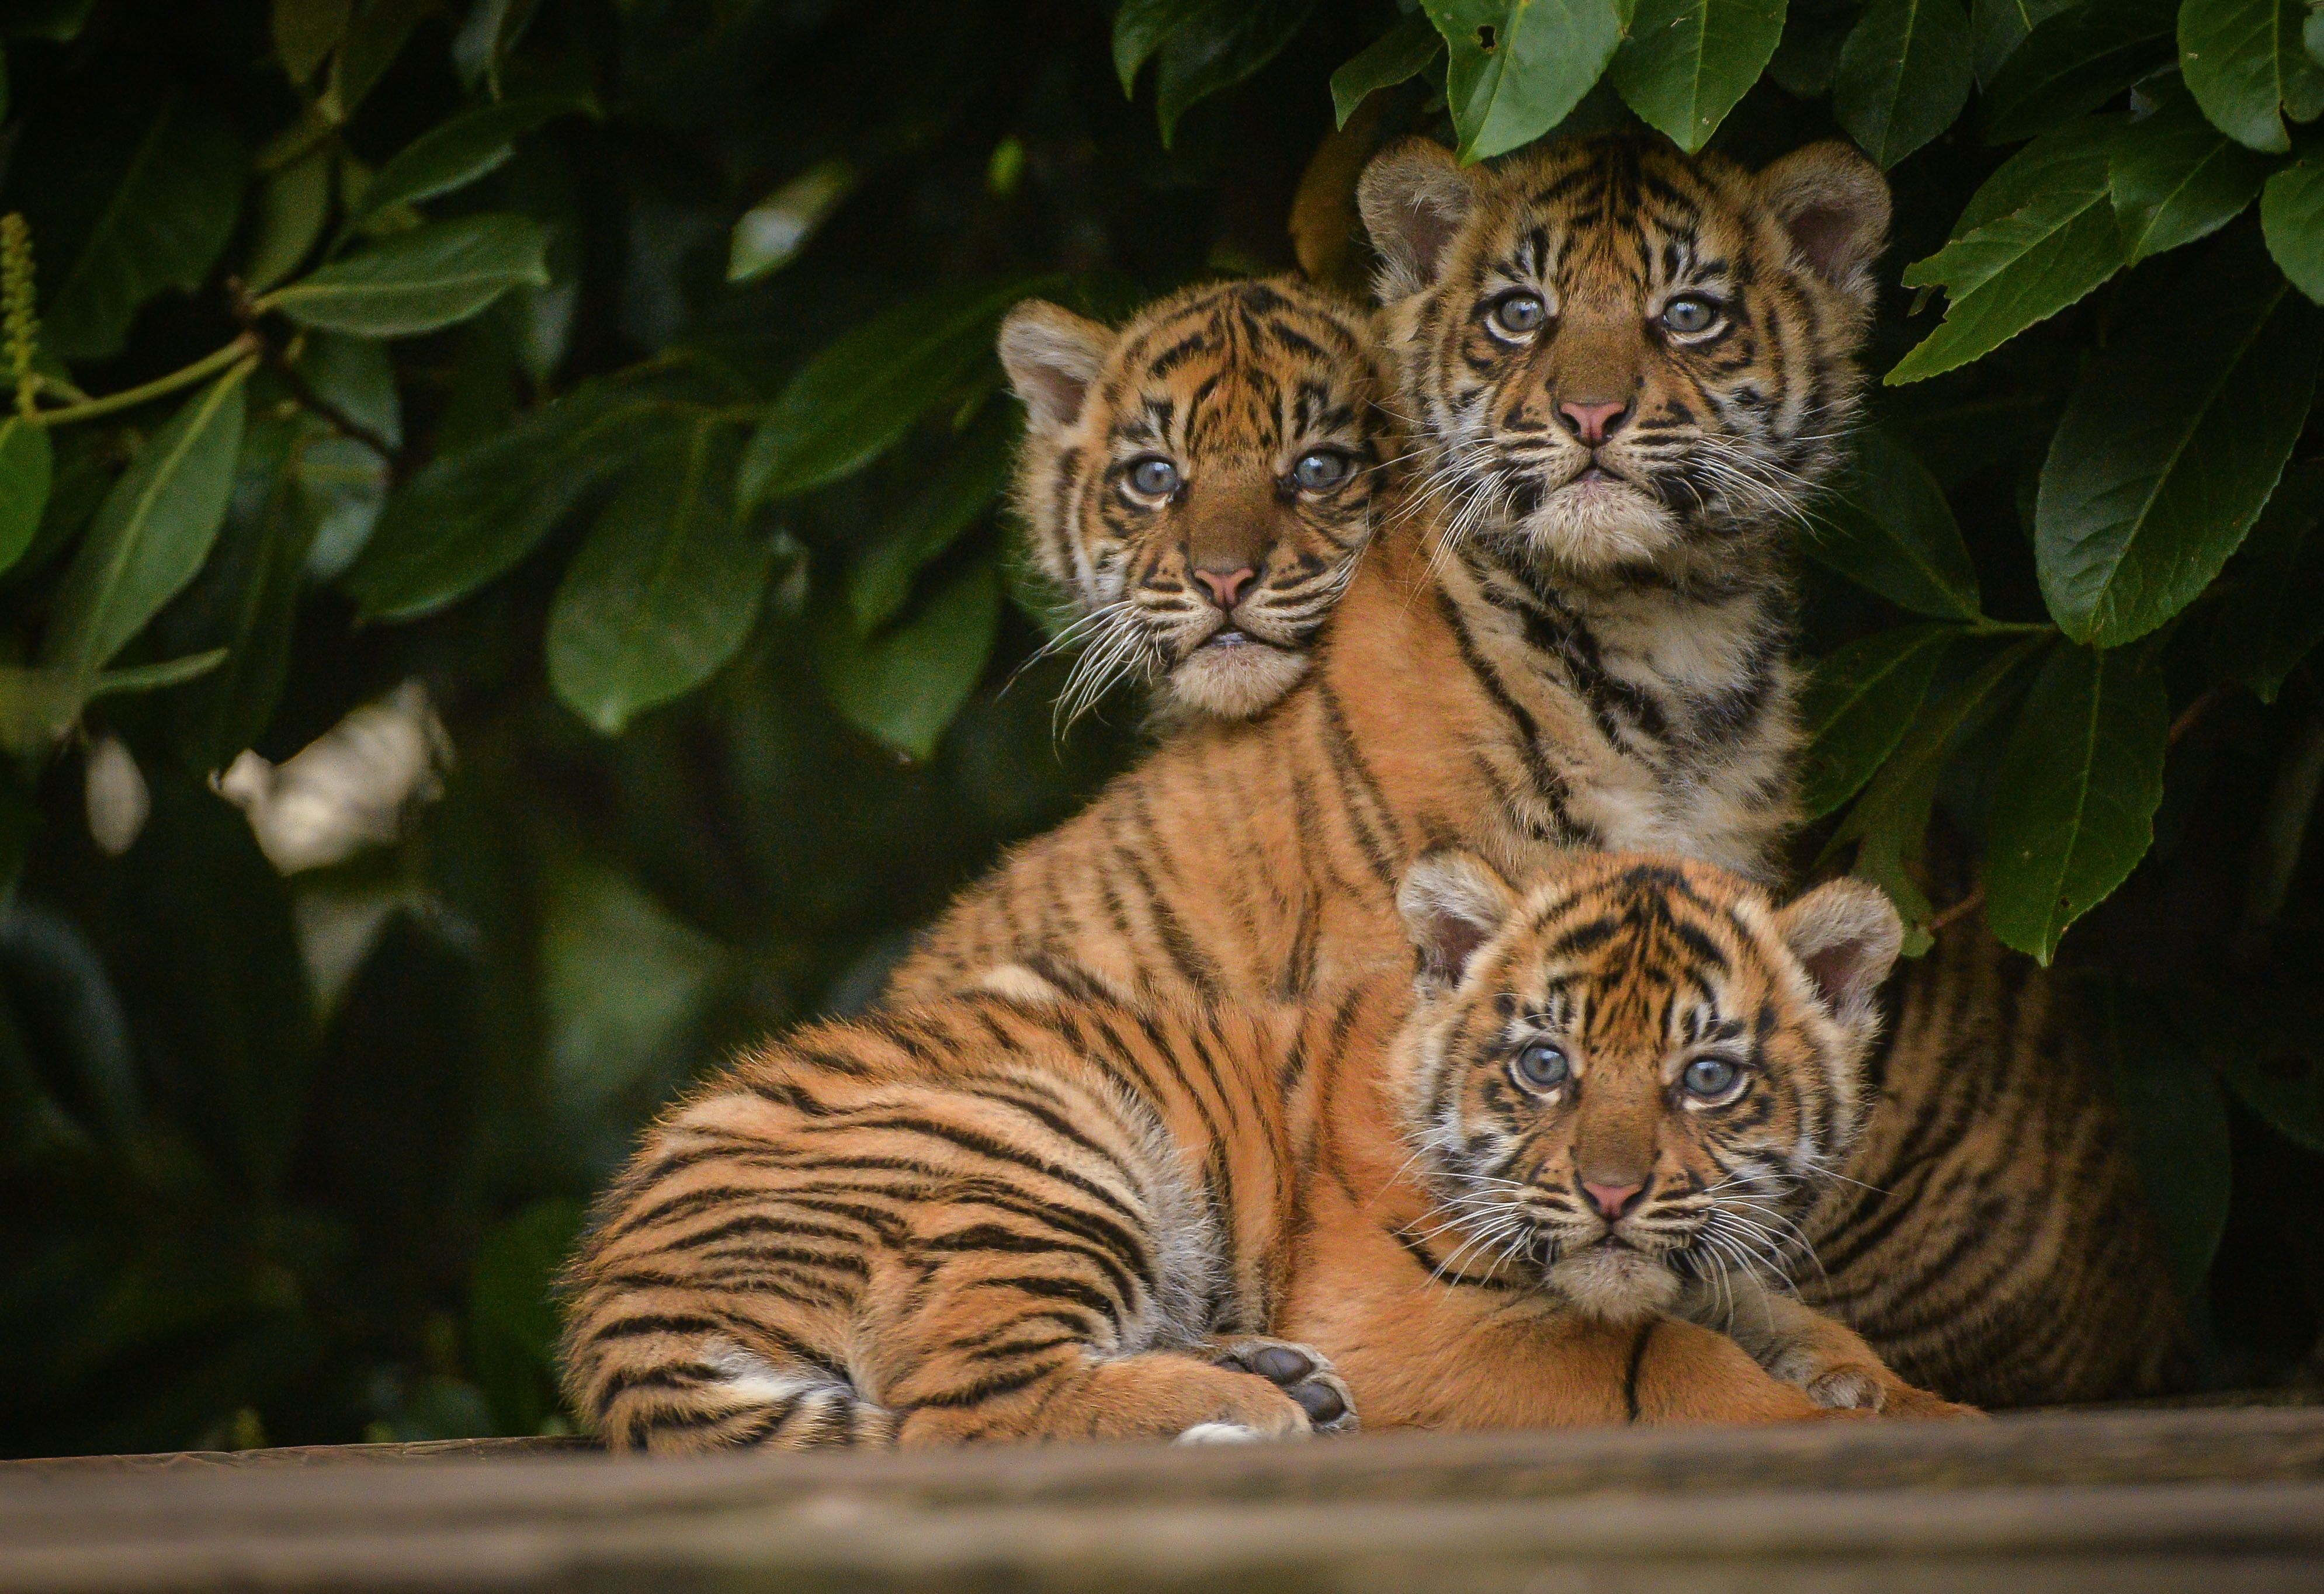 The 12-week-old Sumatran Tiger Cubs, at Chester Zoo, were recently given their new names. Meet 'Jaya', 'Topan', and 'Kasarna'! Check out ZooBorns for more pics and info! http://www.zooborns.com/zooborns/2015/04/sumatran-tiger-trio-got-their-stripesand-names.html